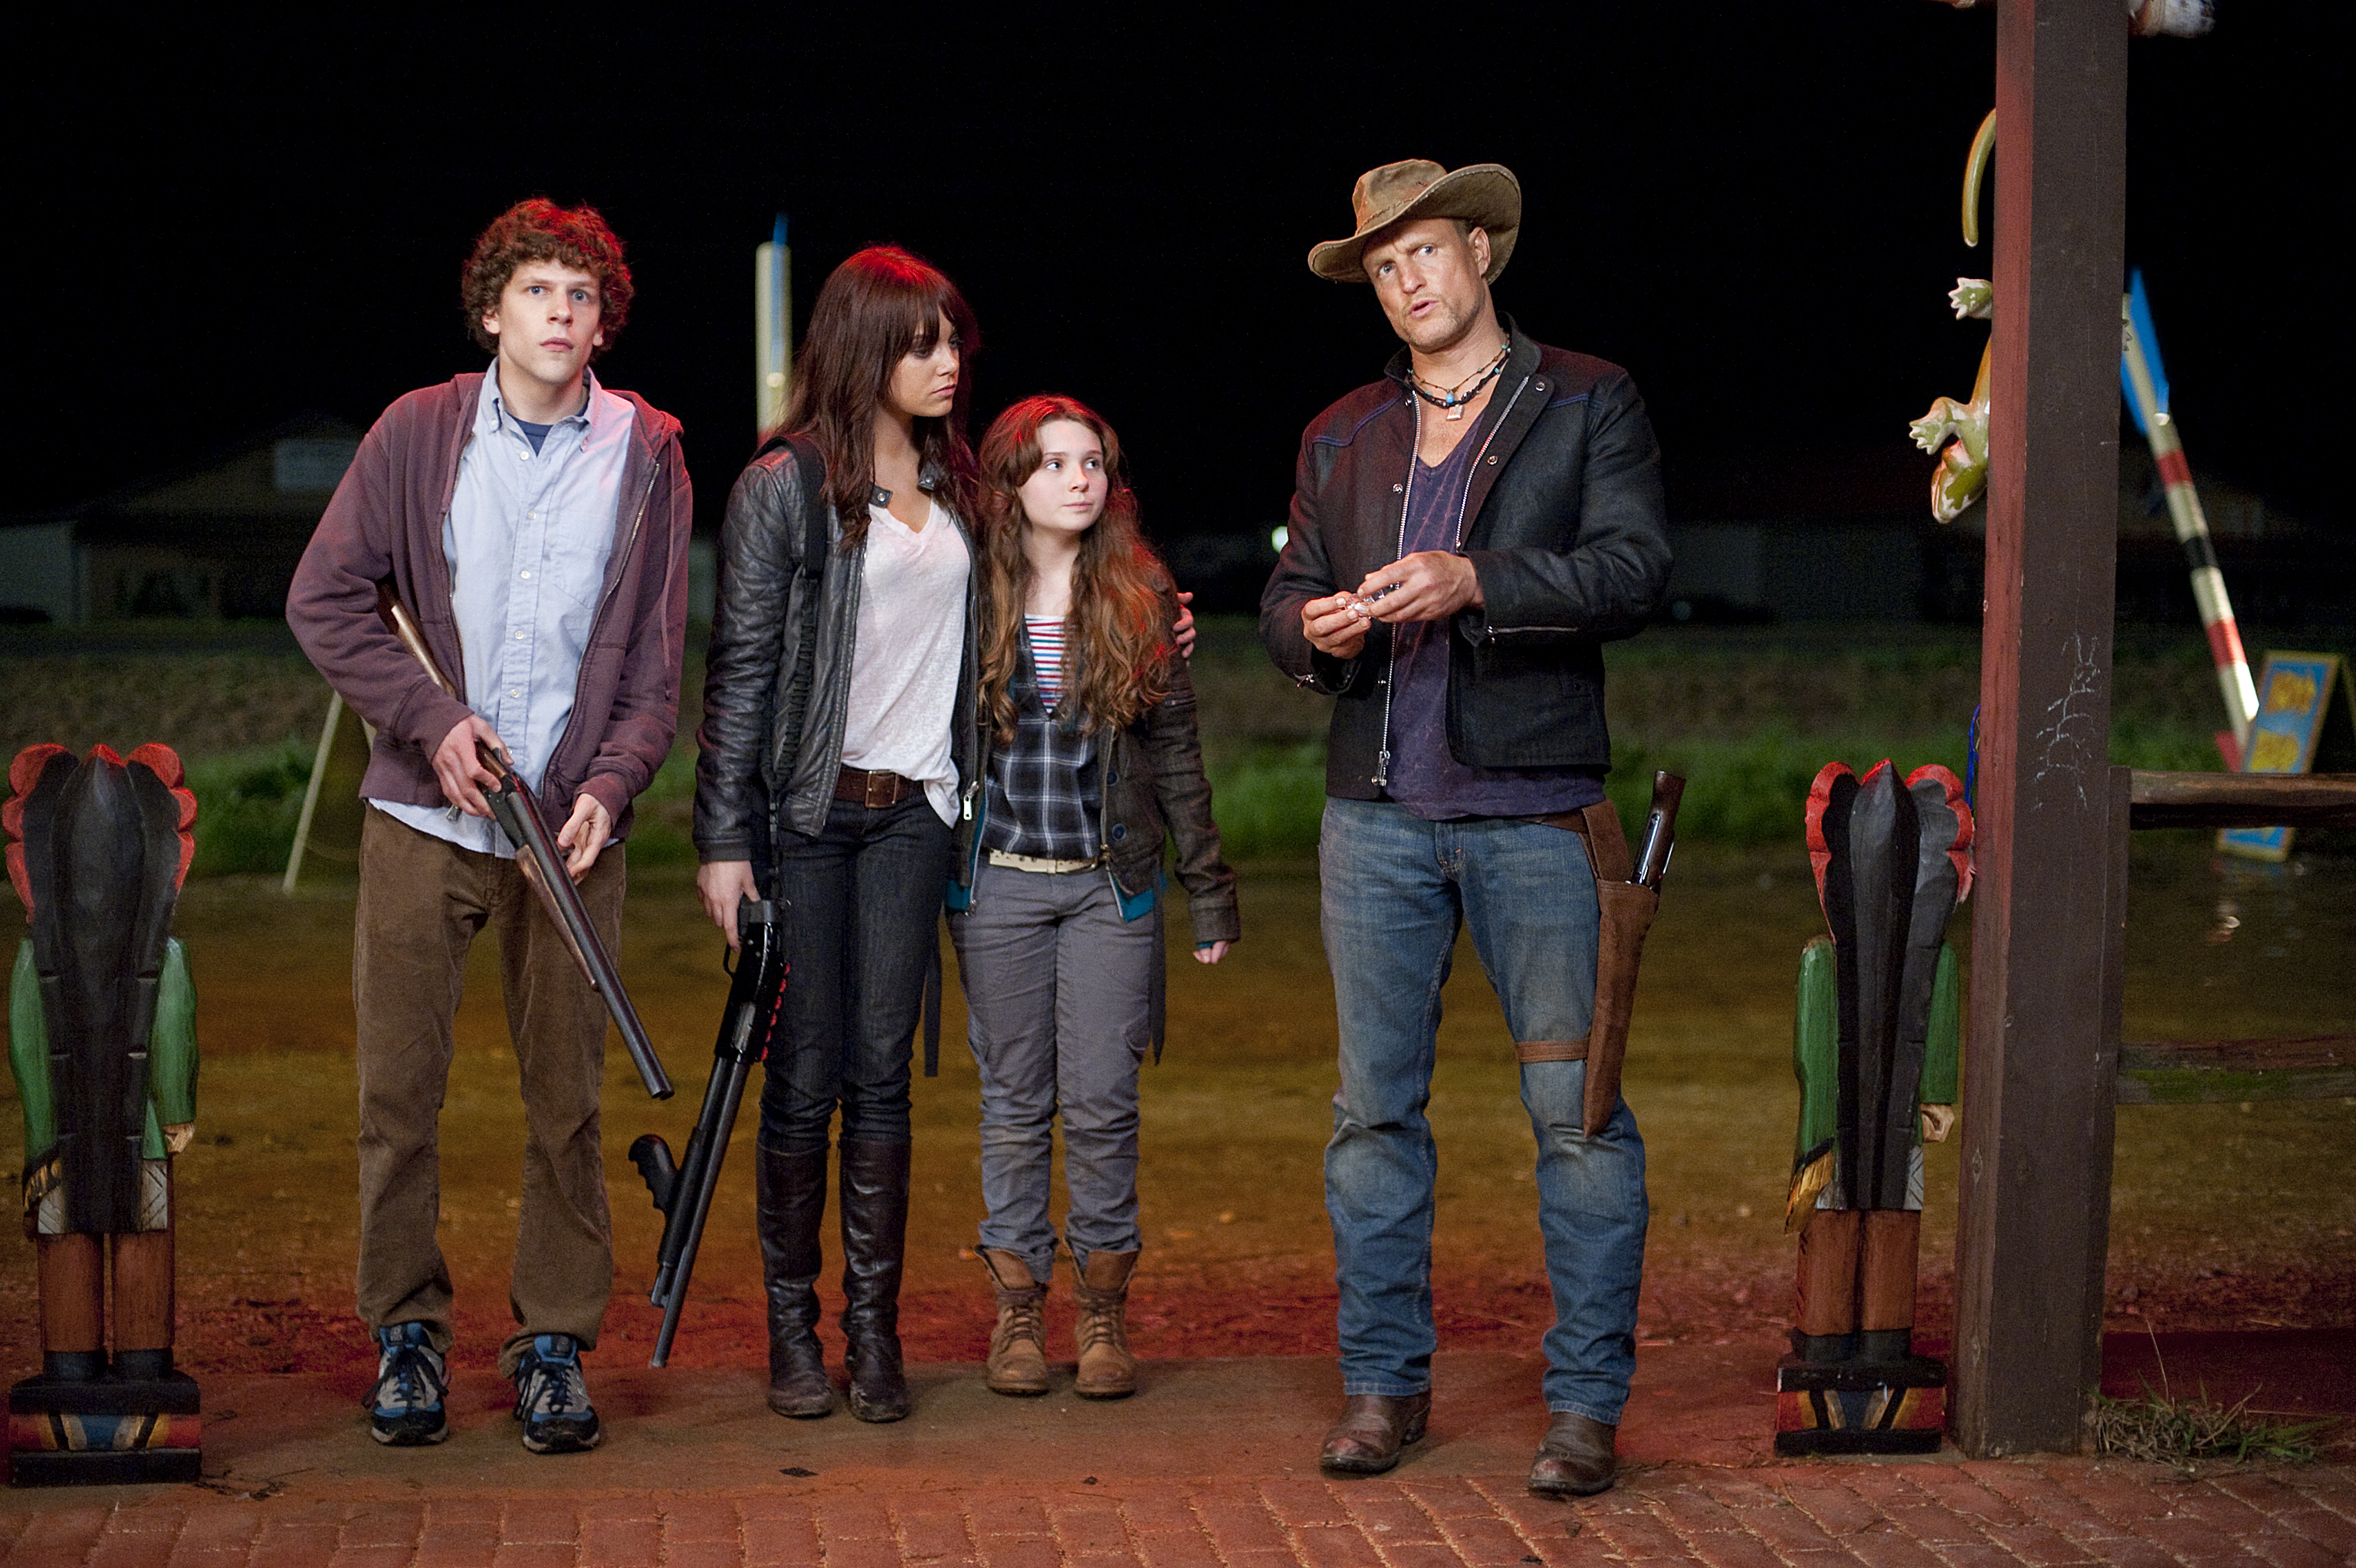 with ZOMBIELAND s director Zombieland